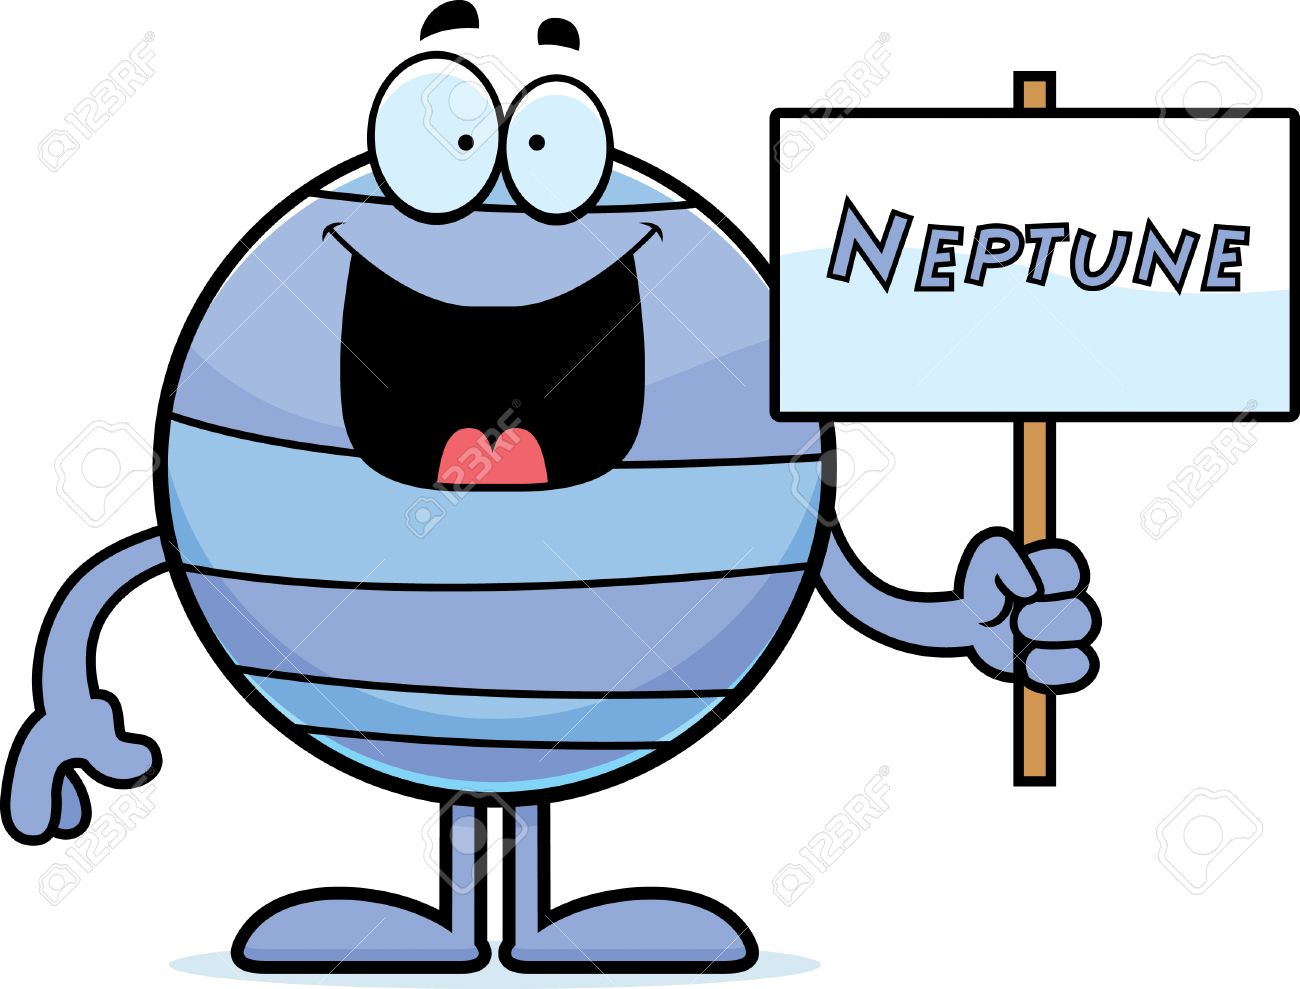 1300x989 A Cartoon Illustration Of The Planet Neptune Holding A Sign